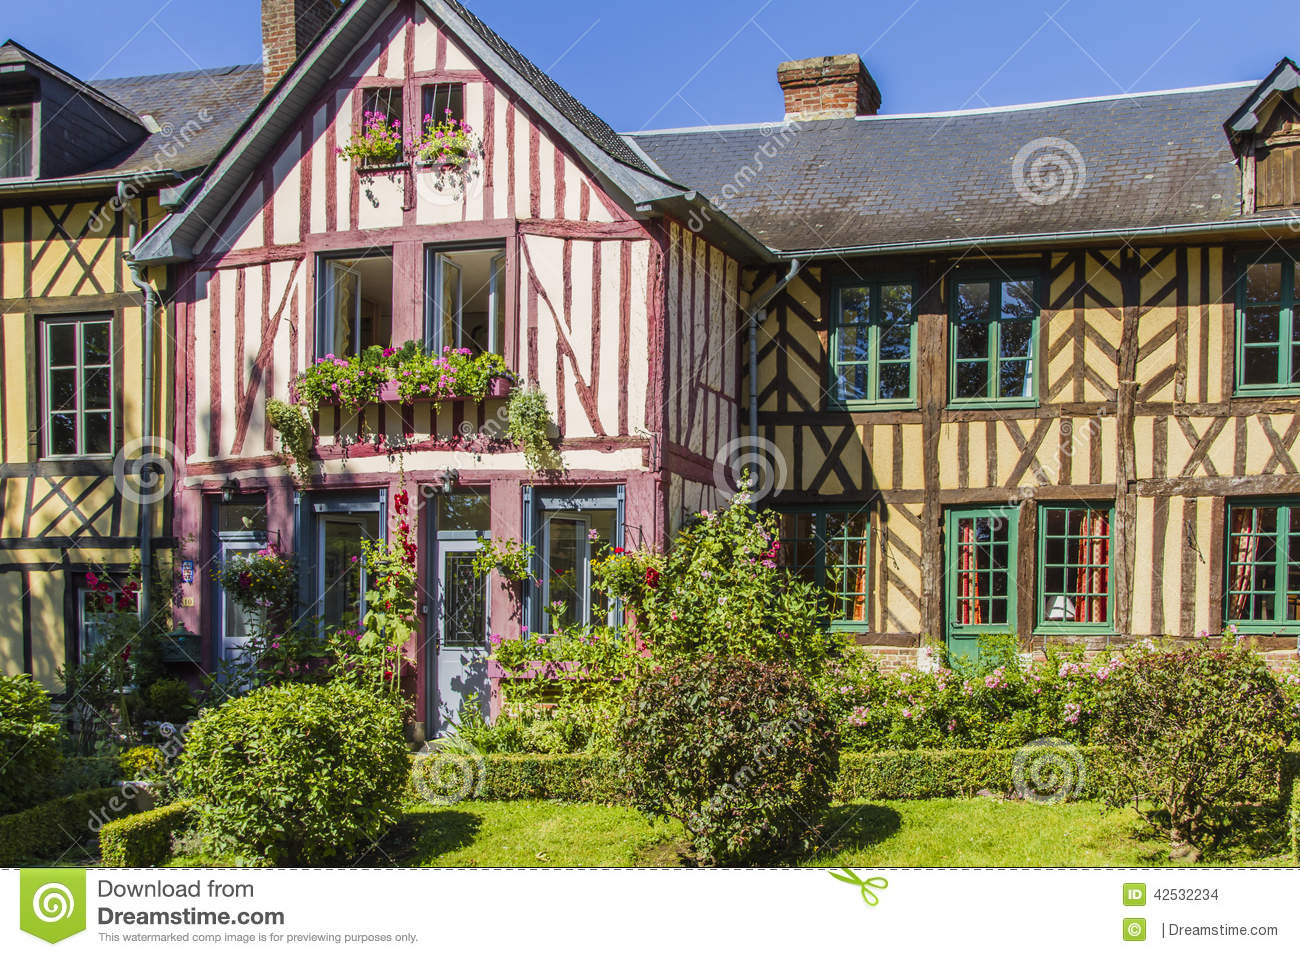 Maisons normandes photo stock image 42532234 for Photos de maisons